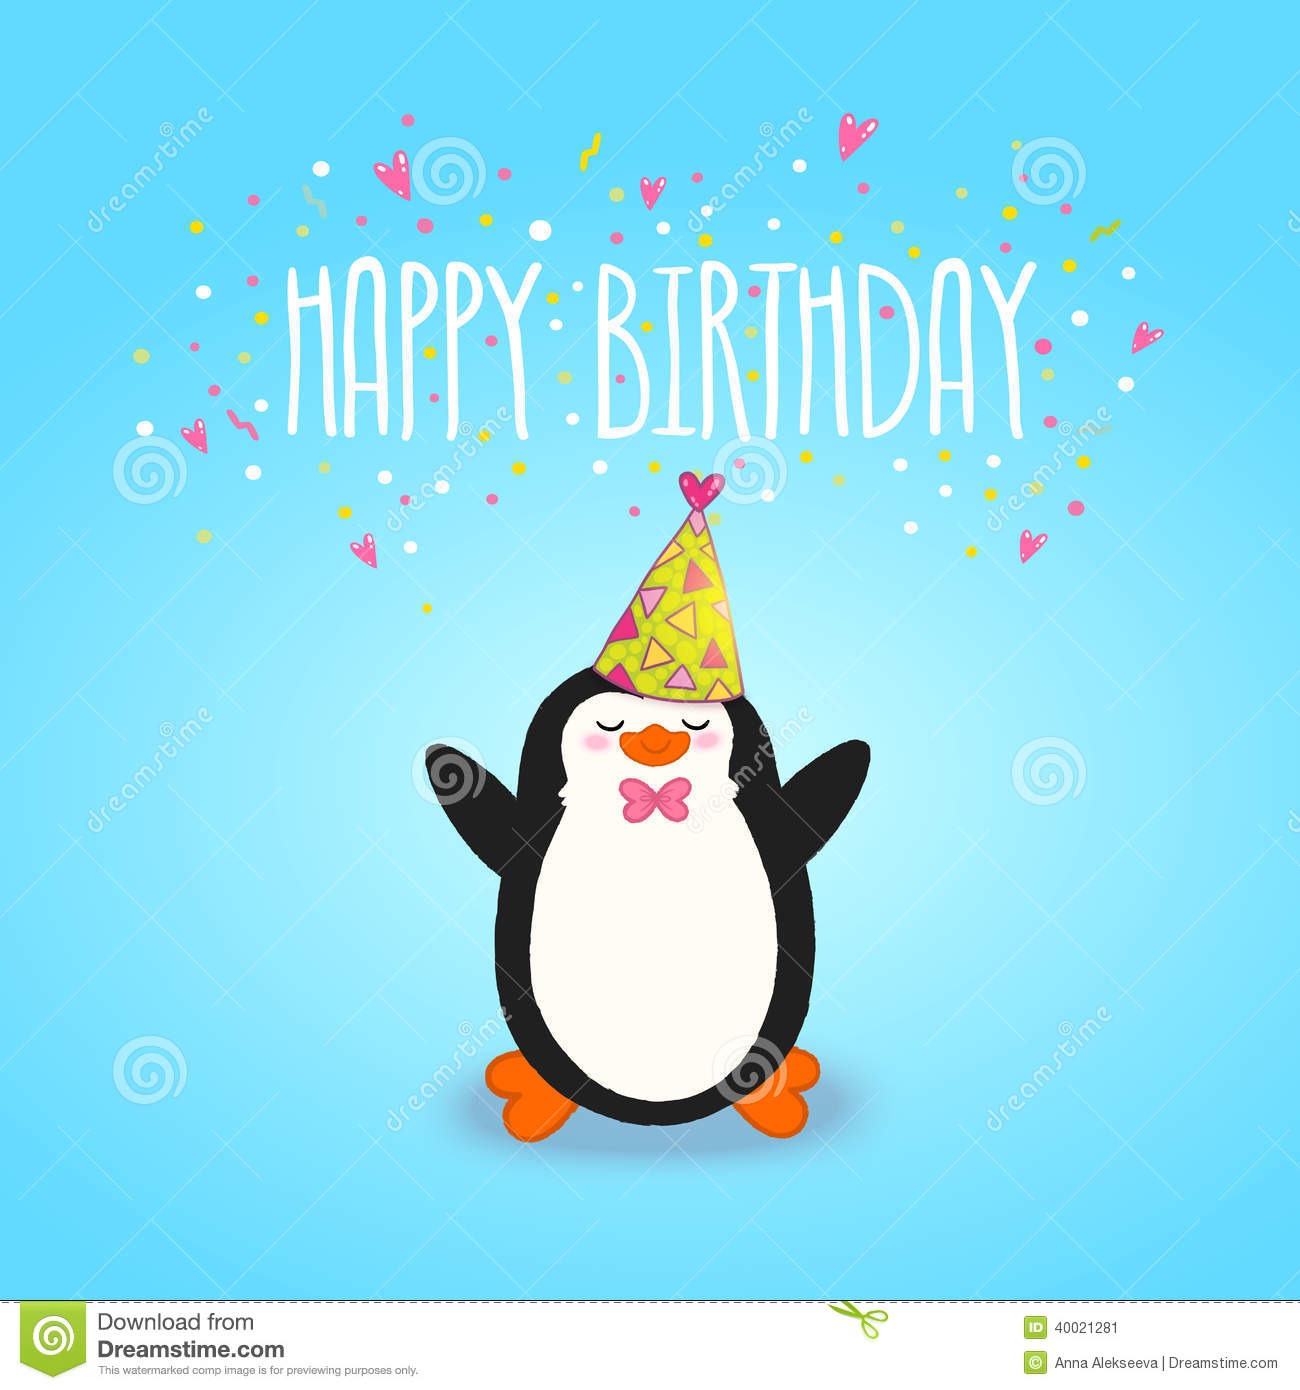 Happy birthday funny cards for him i love you jackie free ecards happy birthday funny cards for him bookmarktalkfo Choice Image